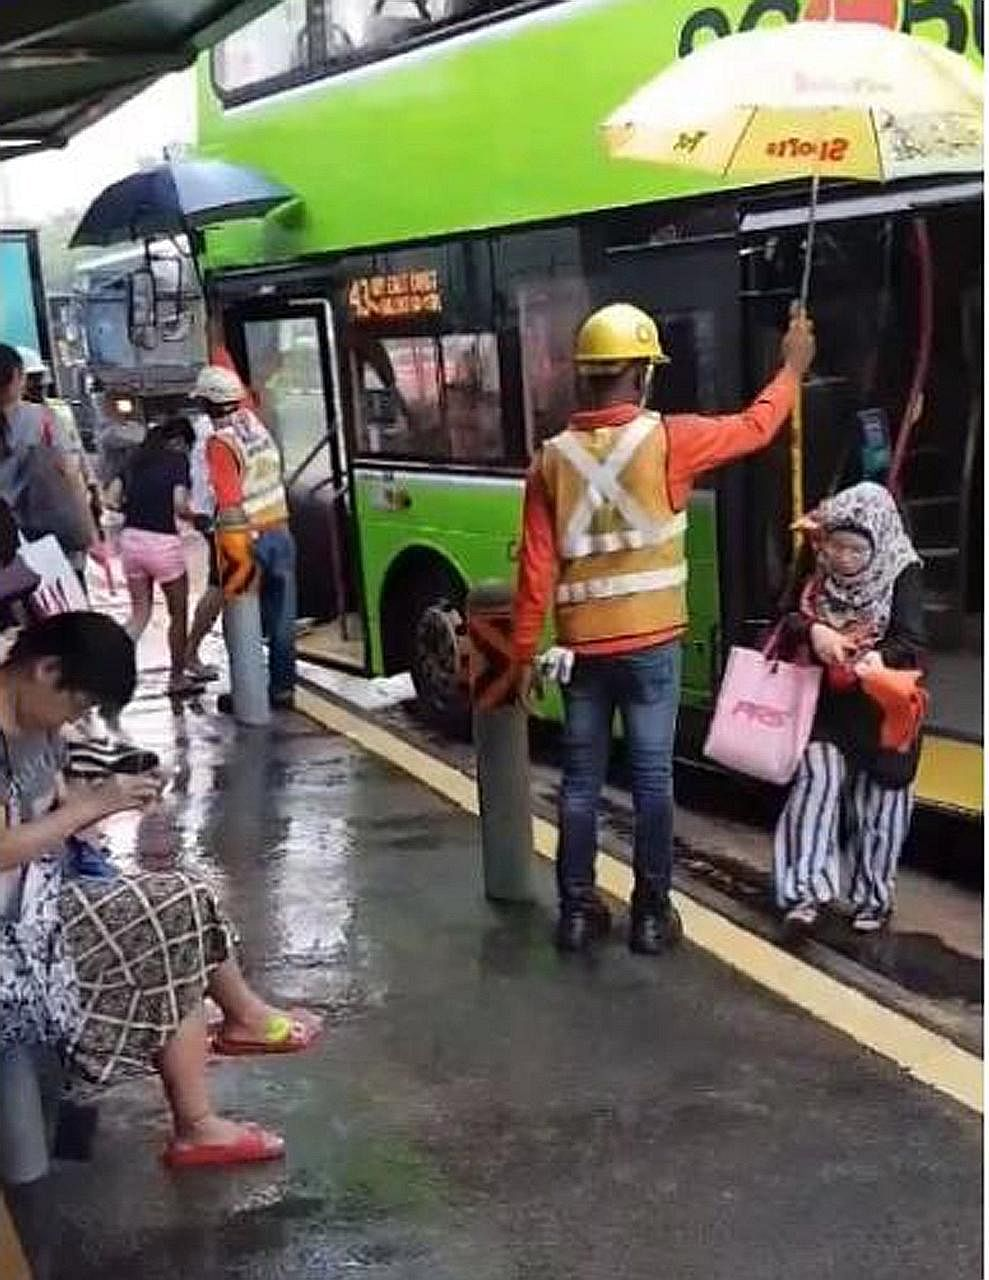 The foreign workers, armed with an umbrella each, stationed themselves at a bus stop in Sengkang at around 10am on Monday to shelter commuters boarding and alighting from buses in the heavy rain.